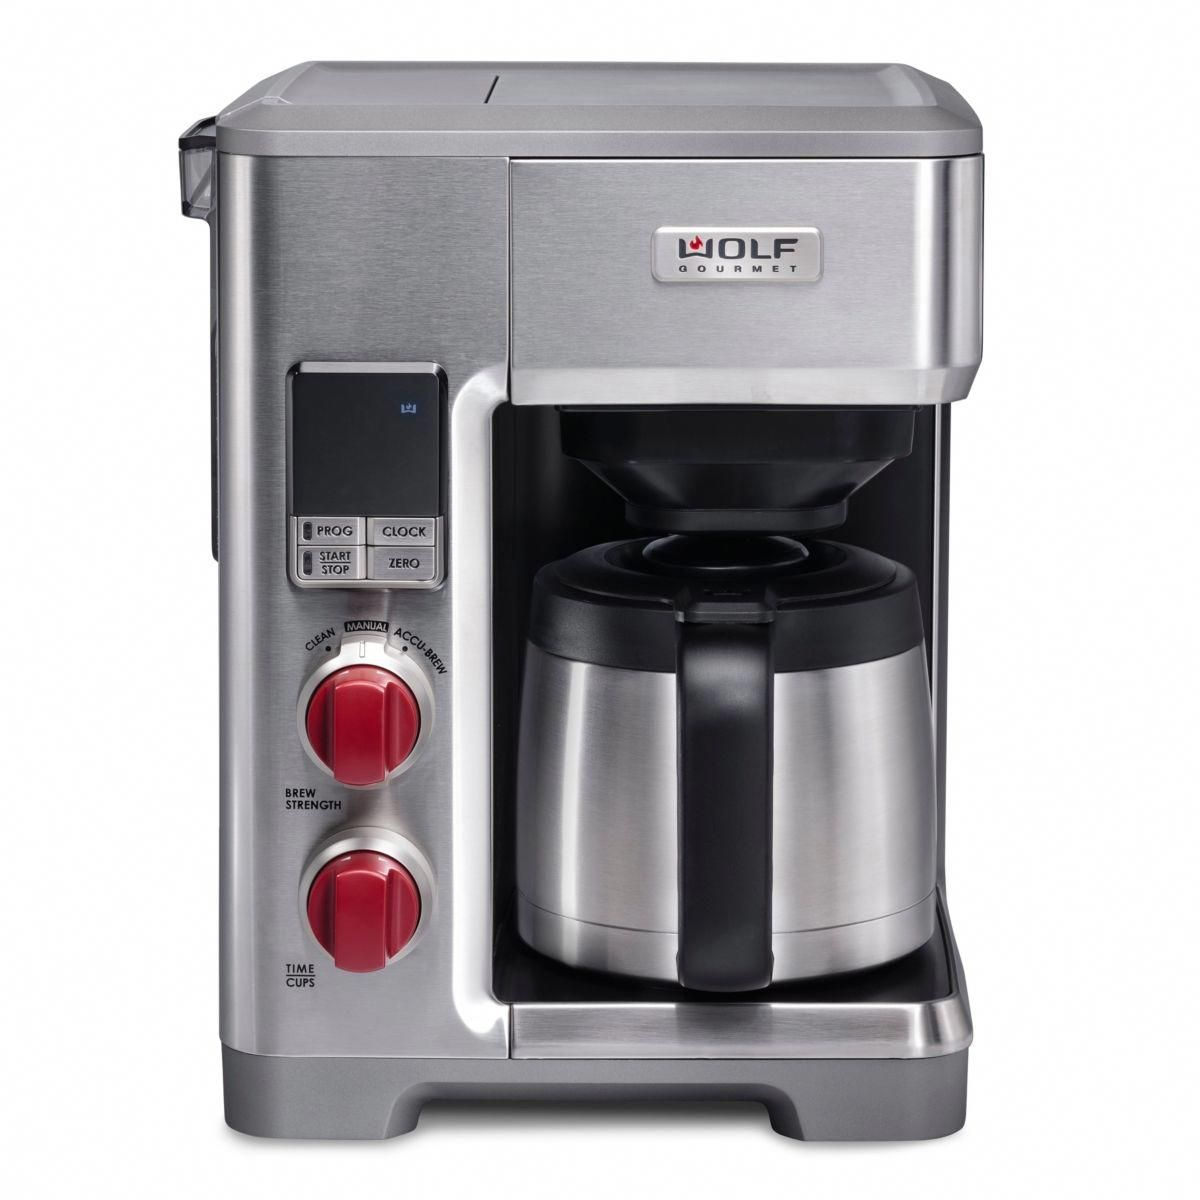 Coffee Brewer With Timer In 2020 Wolf Gourmet Drip Coffee Maker Coffee Maker Reviews